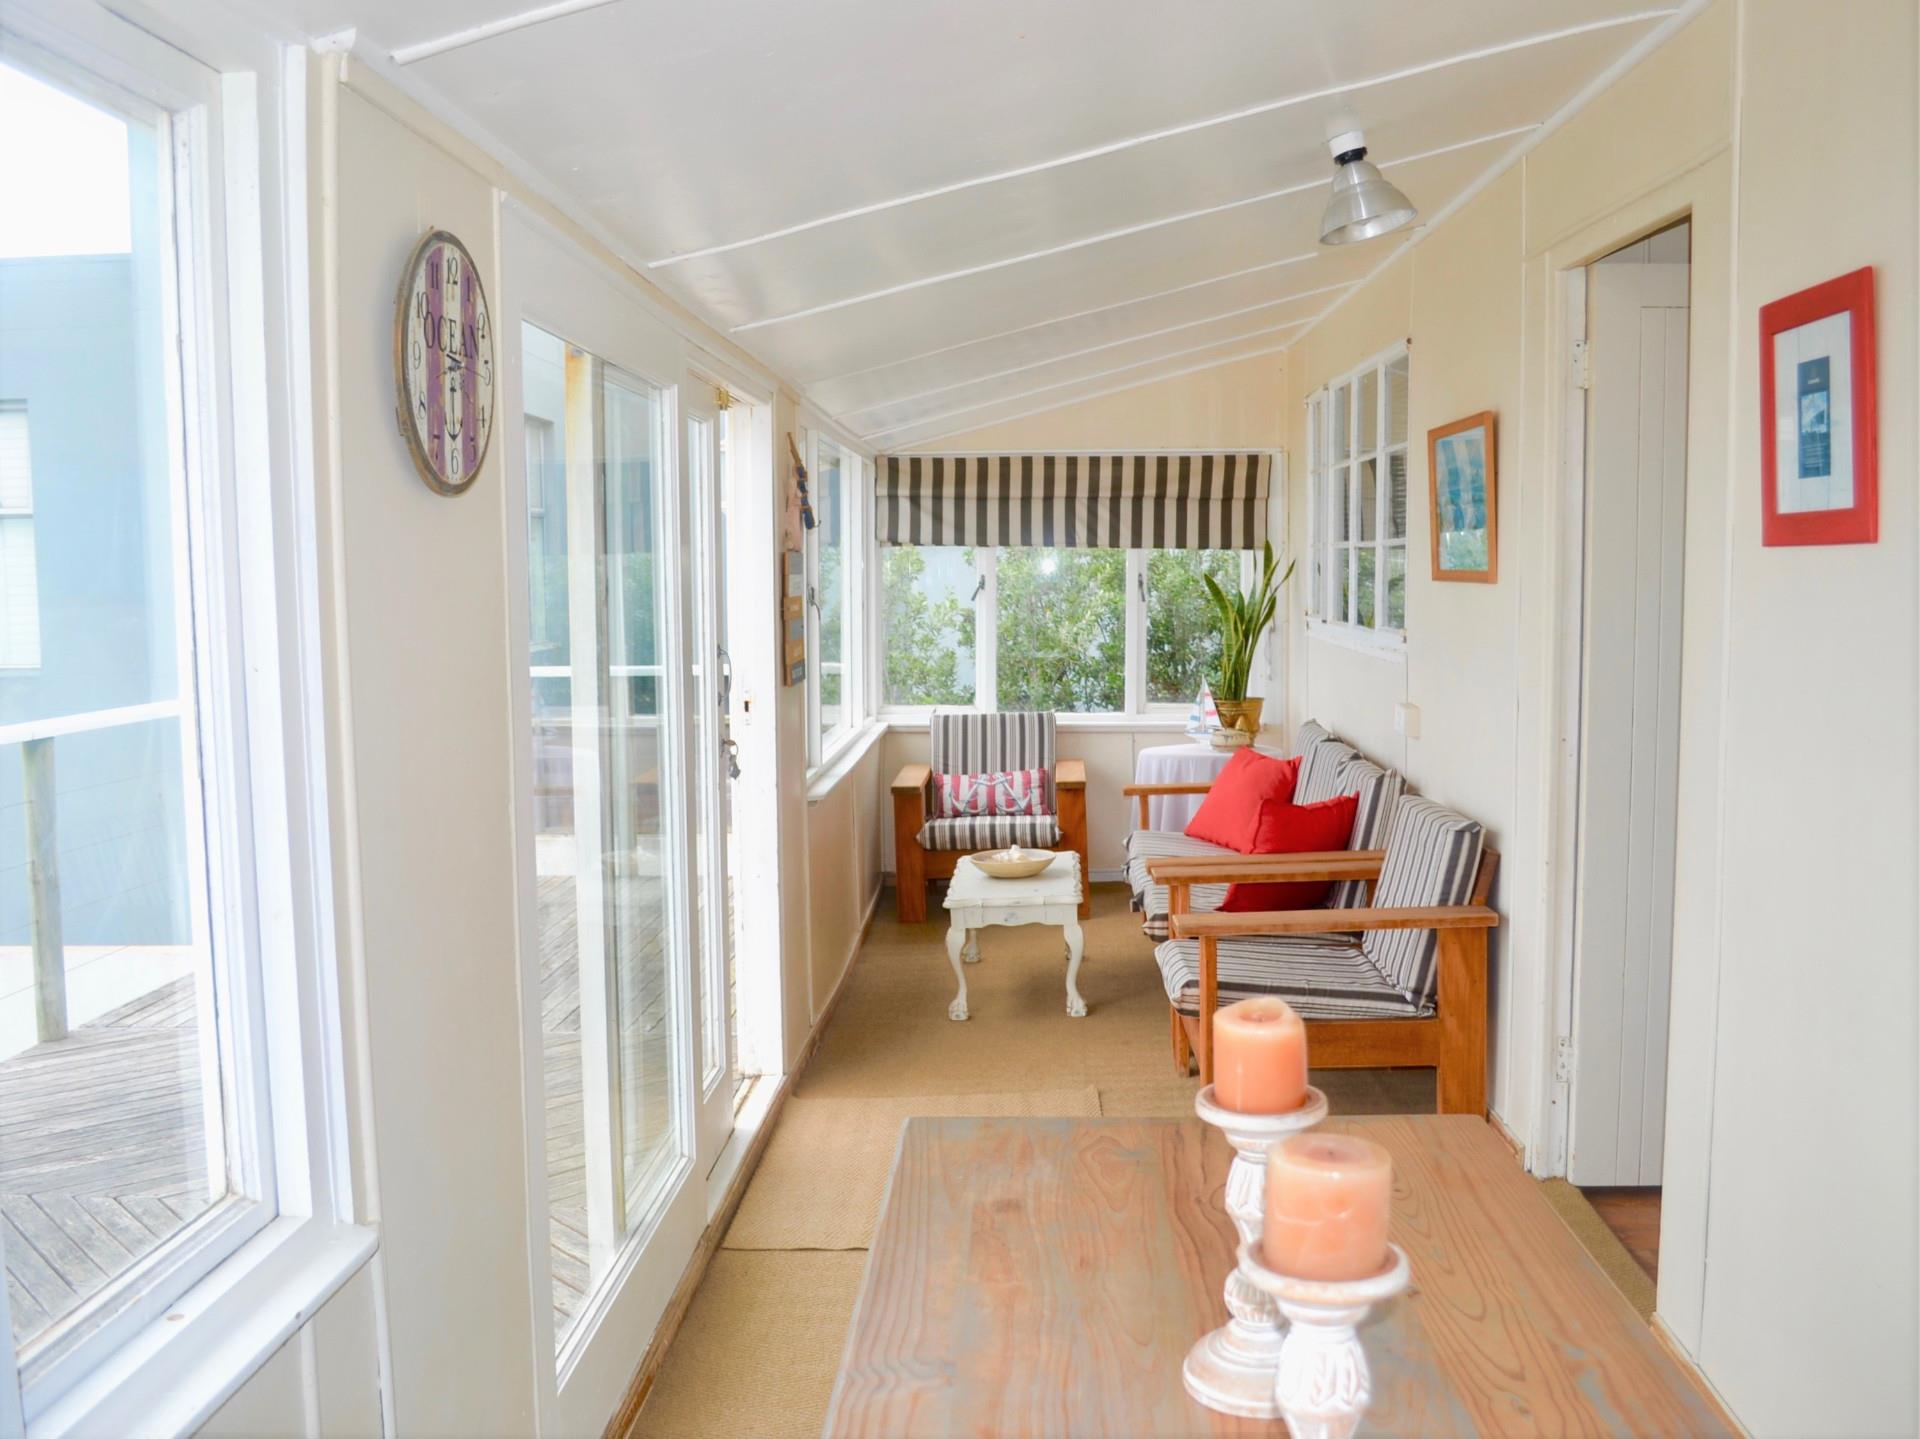 6 Bedroom House For Sale in Buffalo Bay